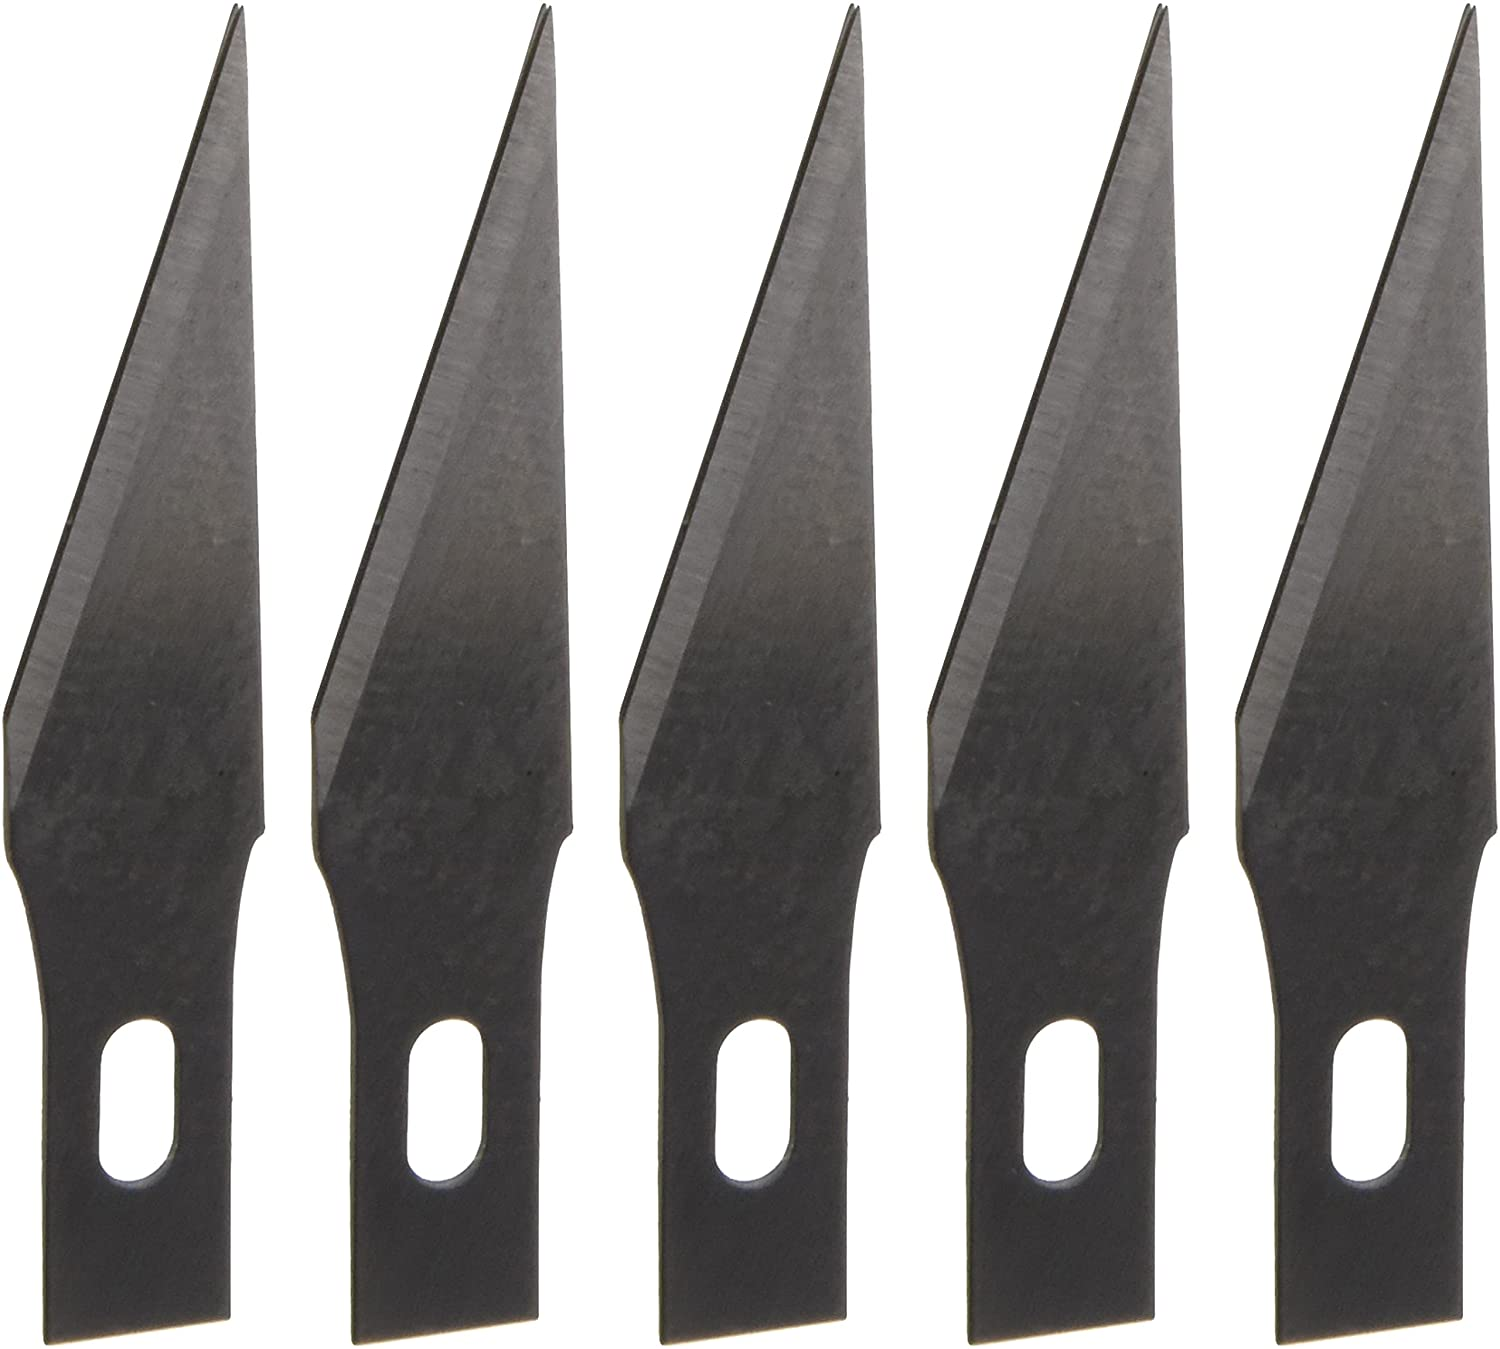 Derwent Replacement Craft Knife Blades, Set of 5, Professional Quality, 2301936 ACCO